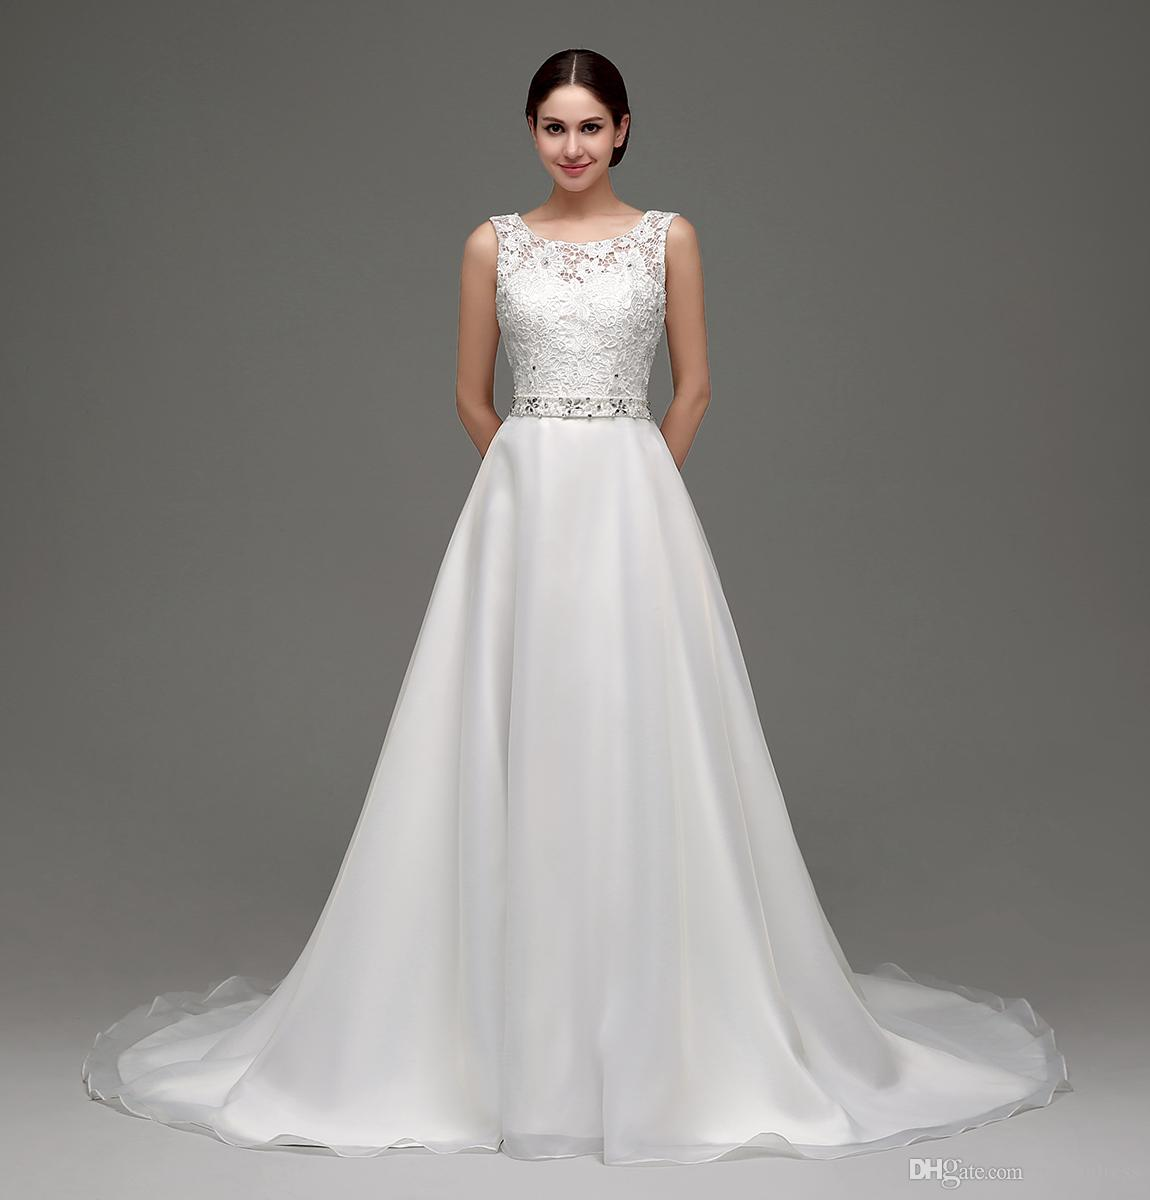 Discount 2017 Wedding Dresses Tank Sleeves A Line Lace Beading Belt Cheap  In Stock Bridal Wedding Gowns 24236 Simple Lace Wedding Dresses The Best  Wedding ... c4e97a391